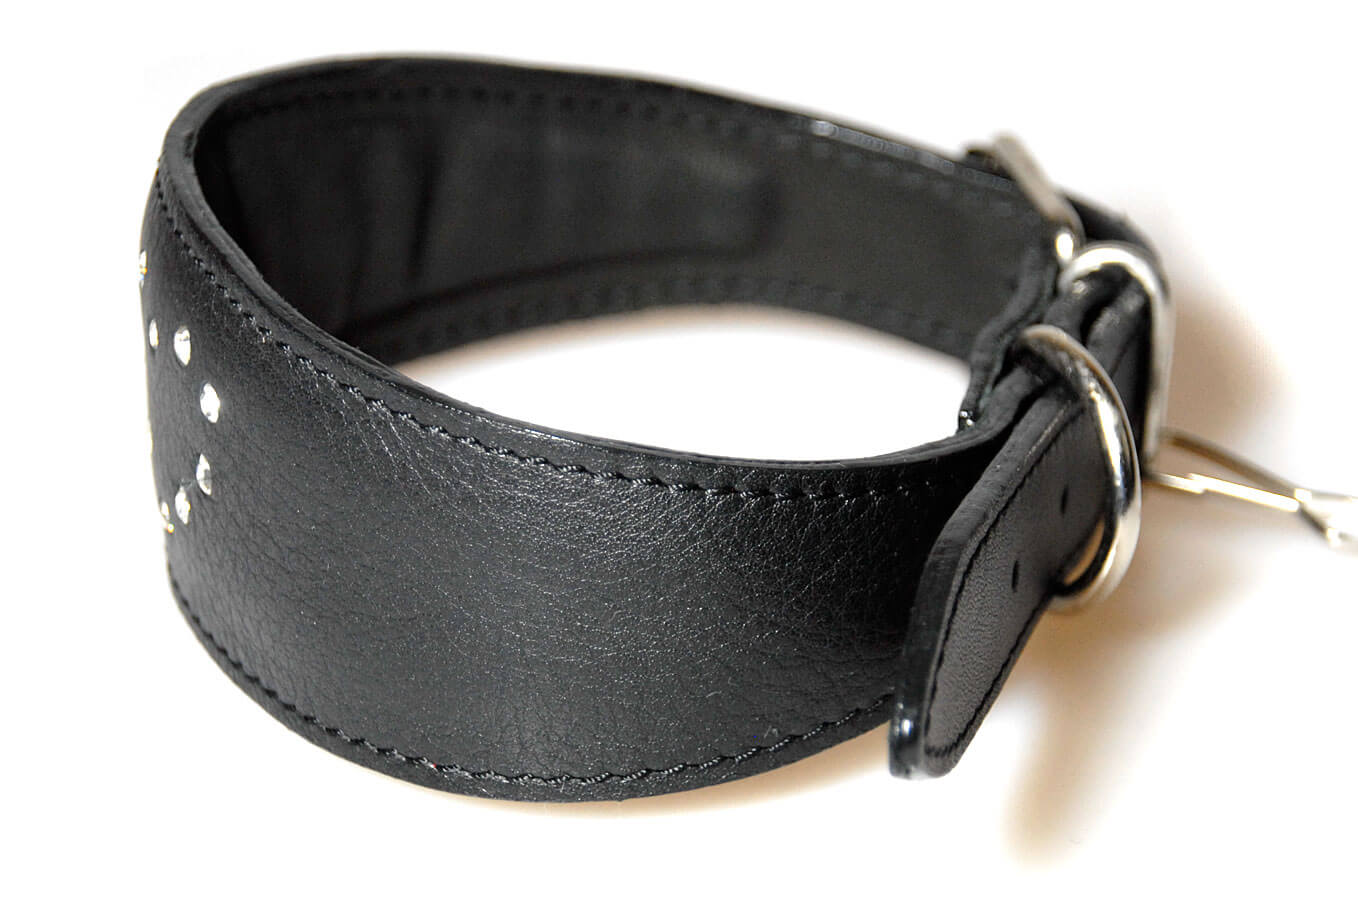 All Dog Moda leather whippet collars are fully lined and padded throughout